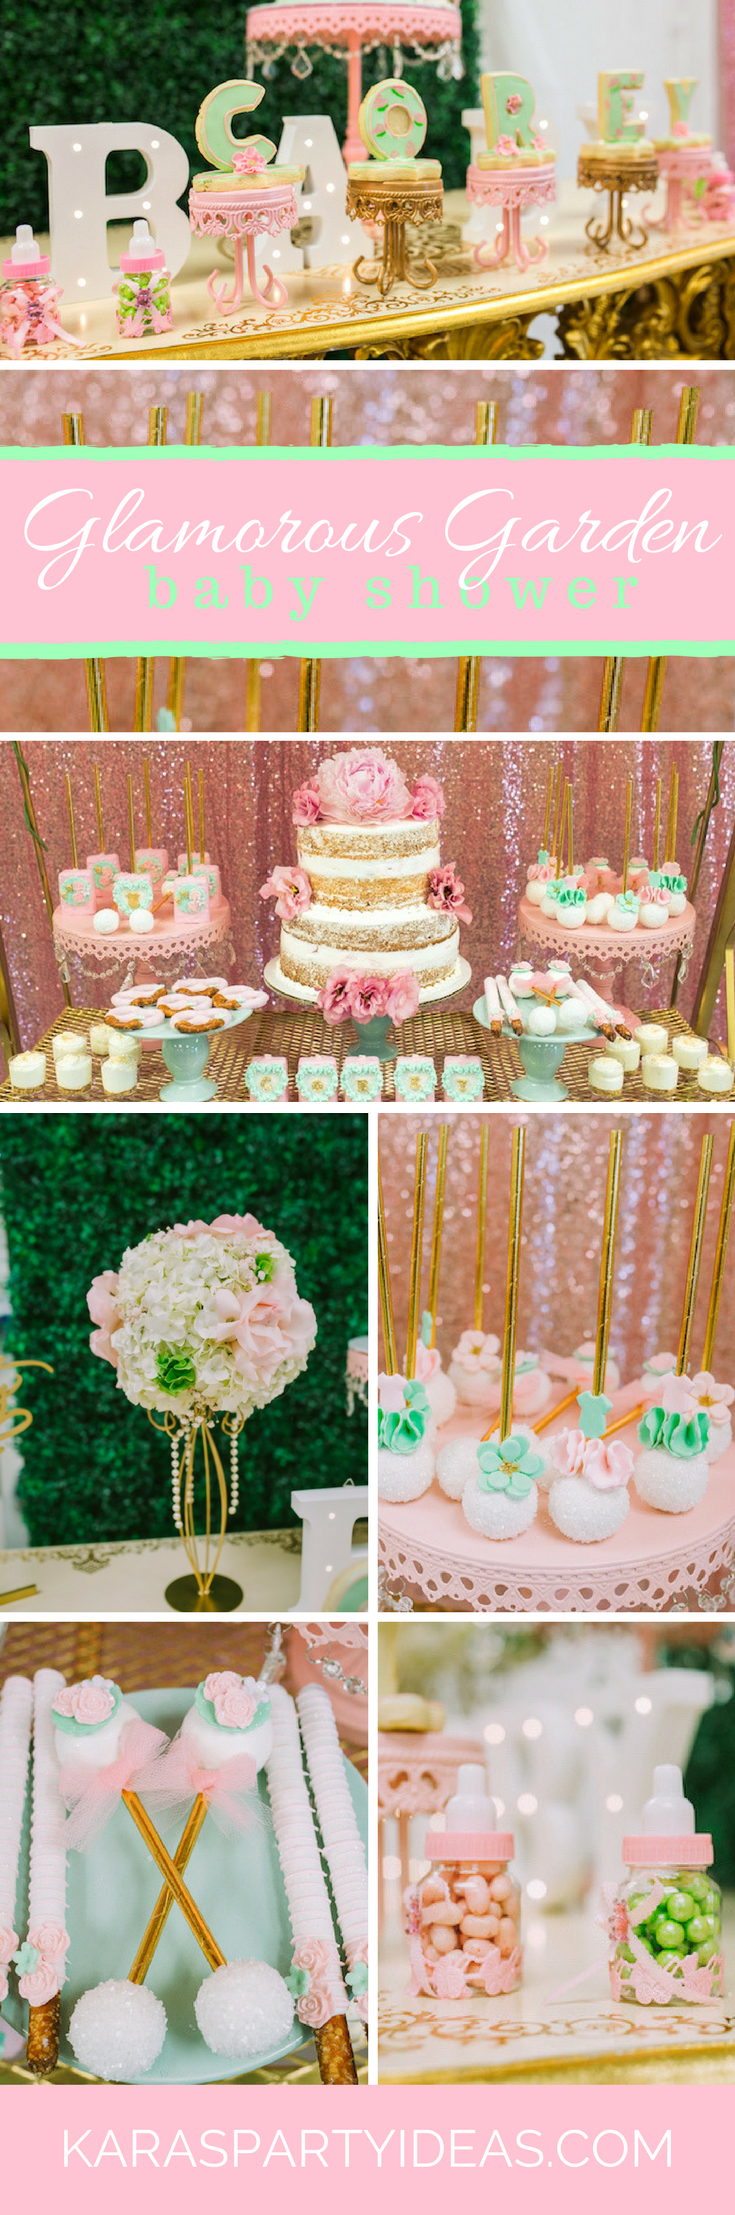 Glamorous Garden Baby Shower via Kara's Party Ideas - KarasPartyIdeas.com